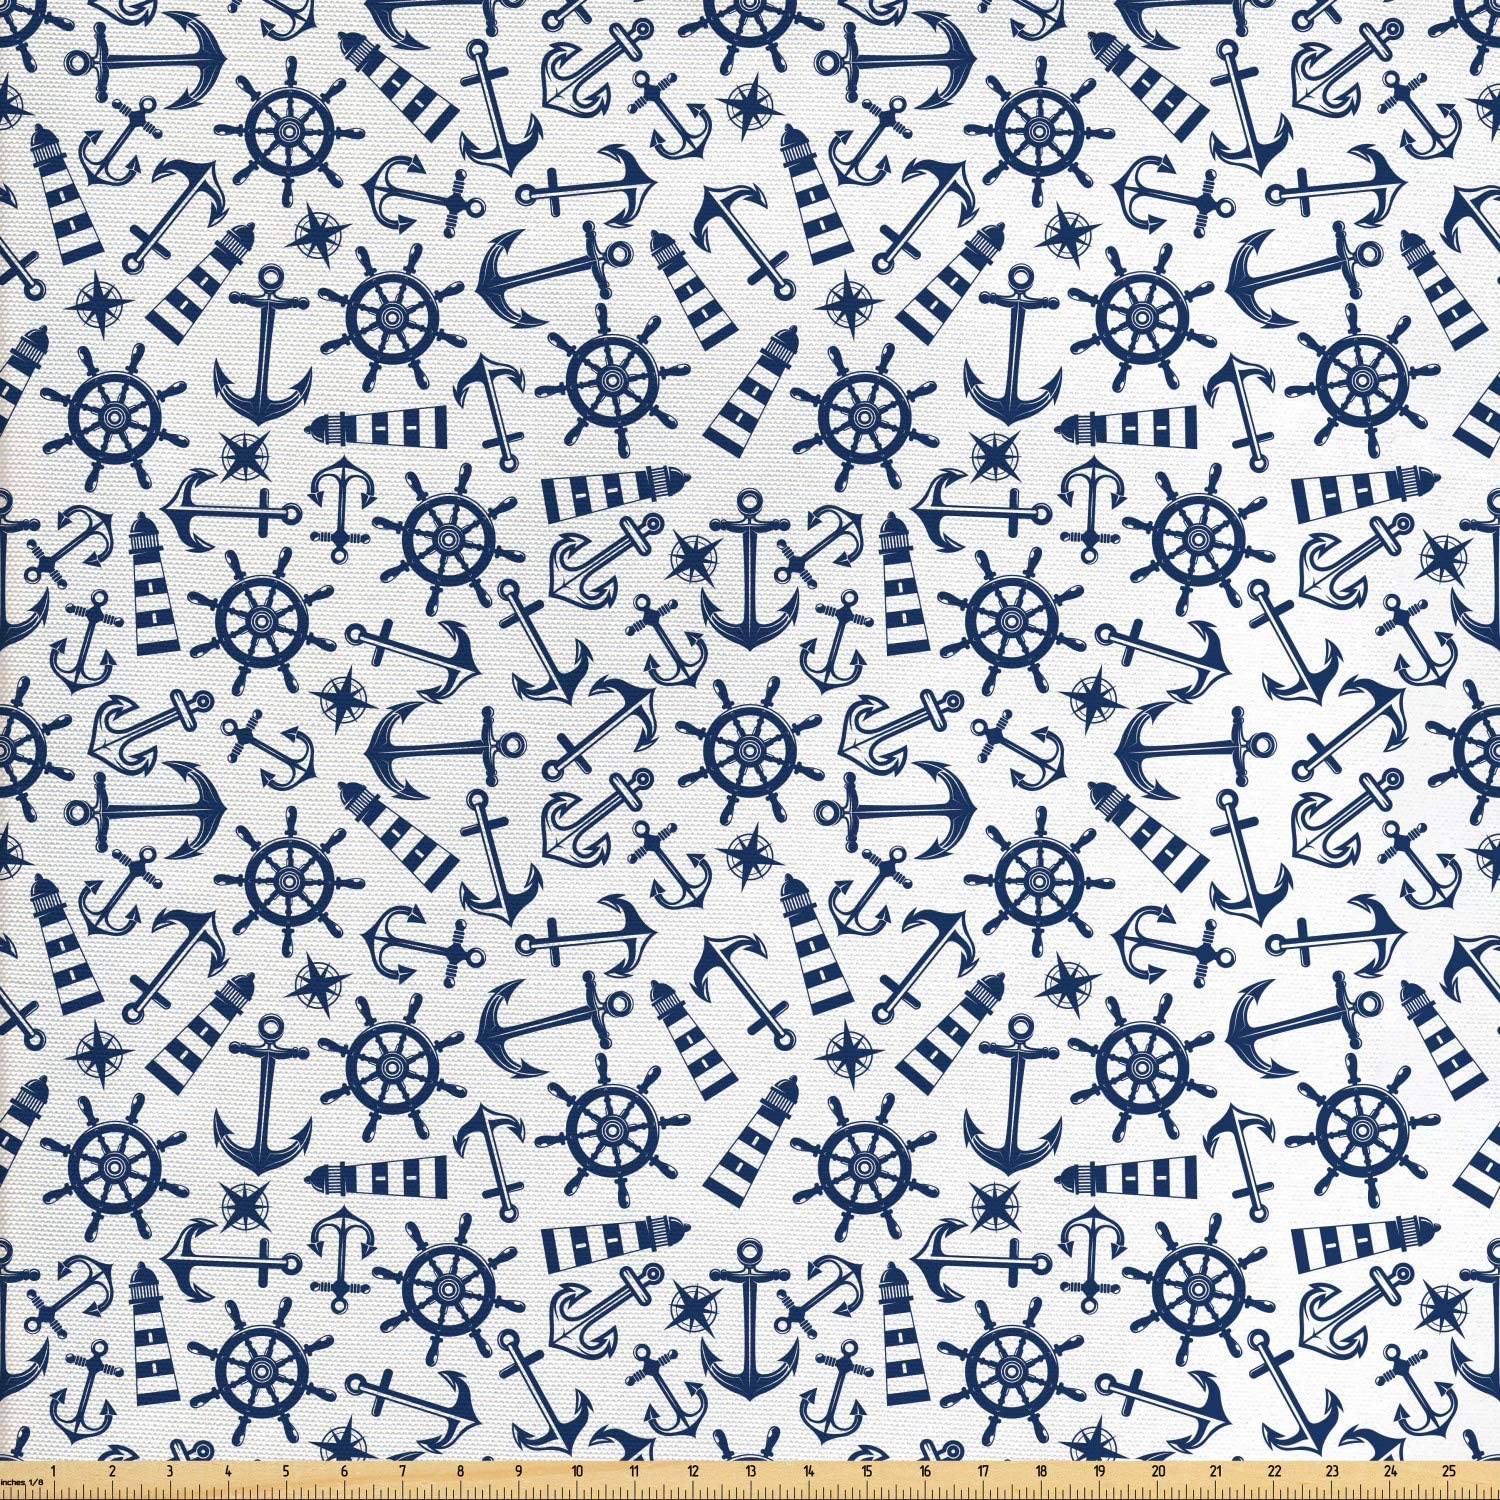 Ambesonne Navy White Fabric by The Yard, Simple Retro Nautical Pattern with Anchor Helm Lighthouse and Windrose, Decorative Fabric for Upholstery and Home Accents, Night Blue and White